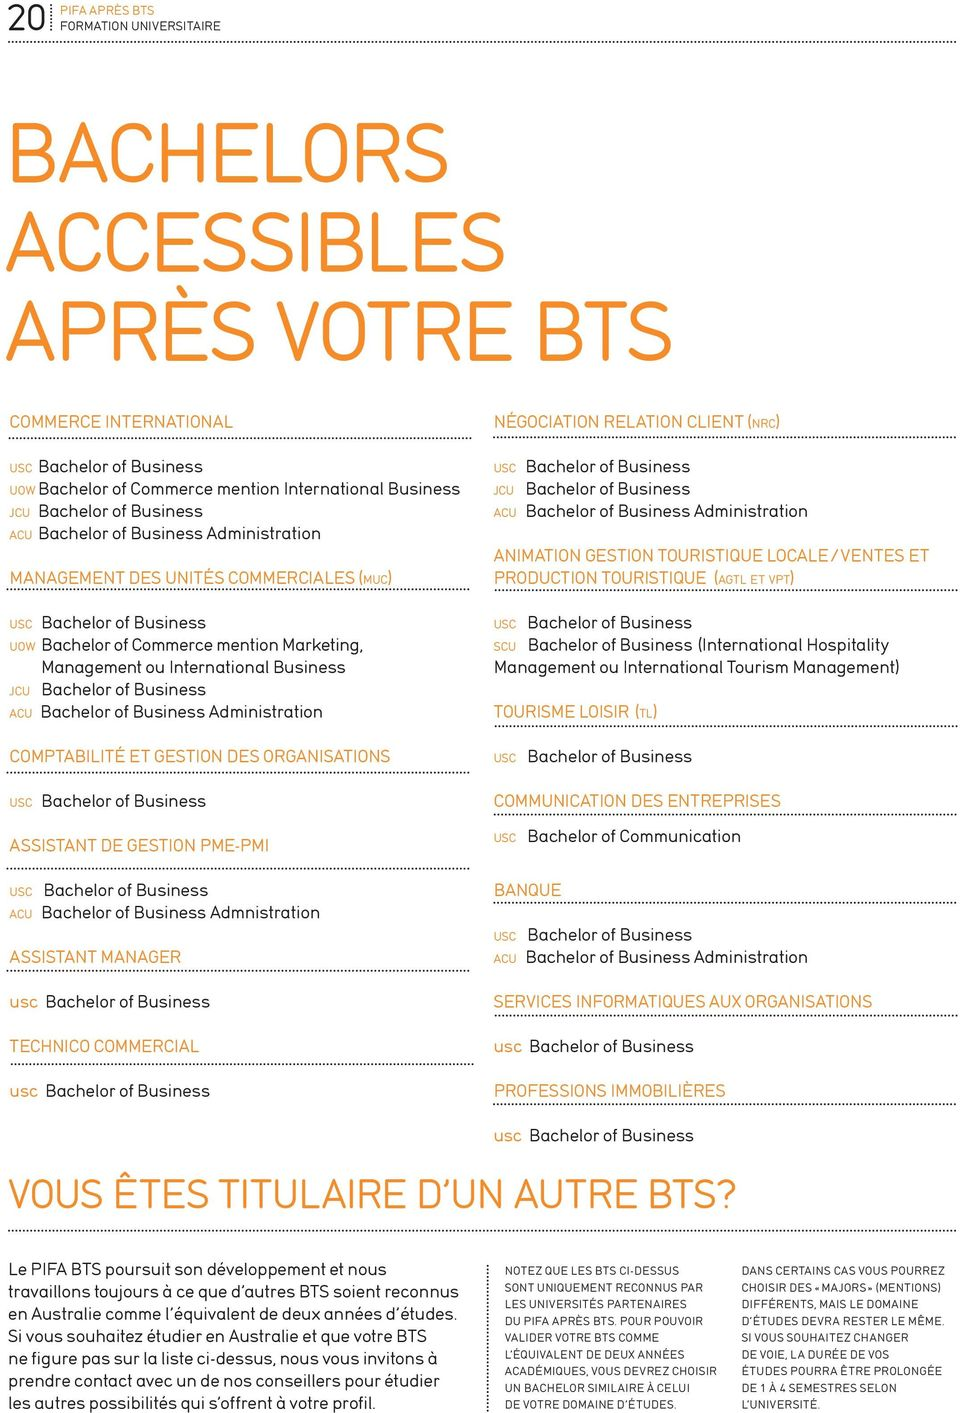 Bachelor of Business acu Bachelor of Business Administration comptabilité et gestion des organisations usc Bachelor of Business ASSISTANT de gestion PME-PMI usc Bachelor of Business acu Bachelor of